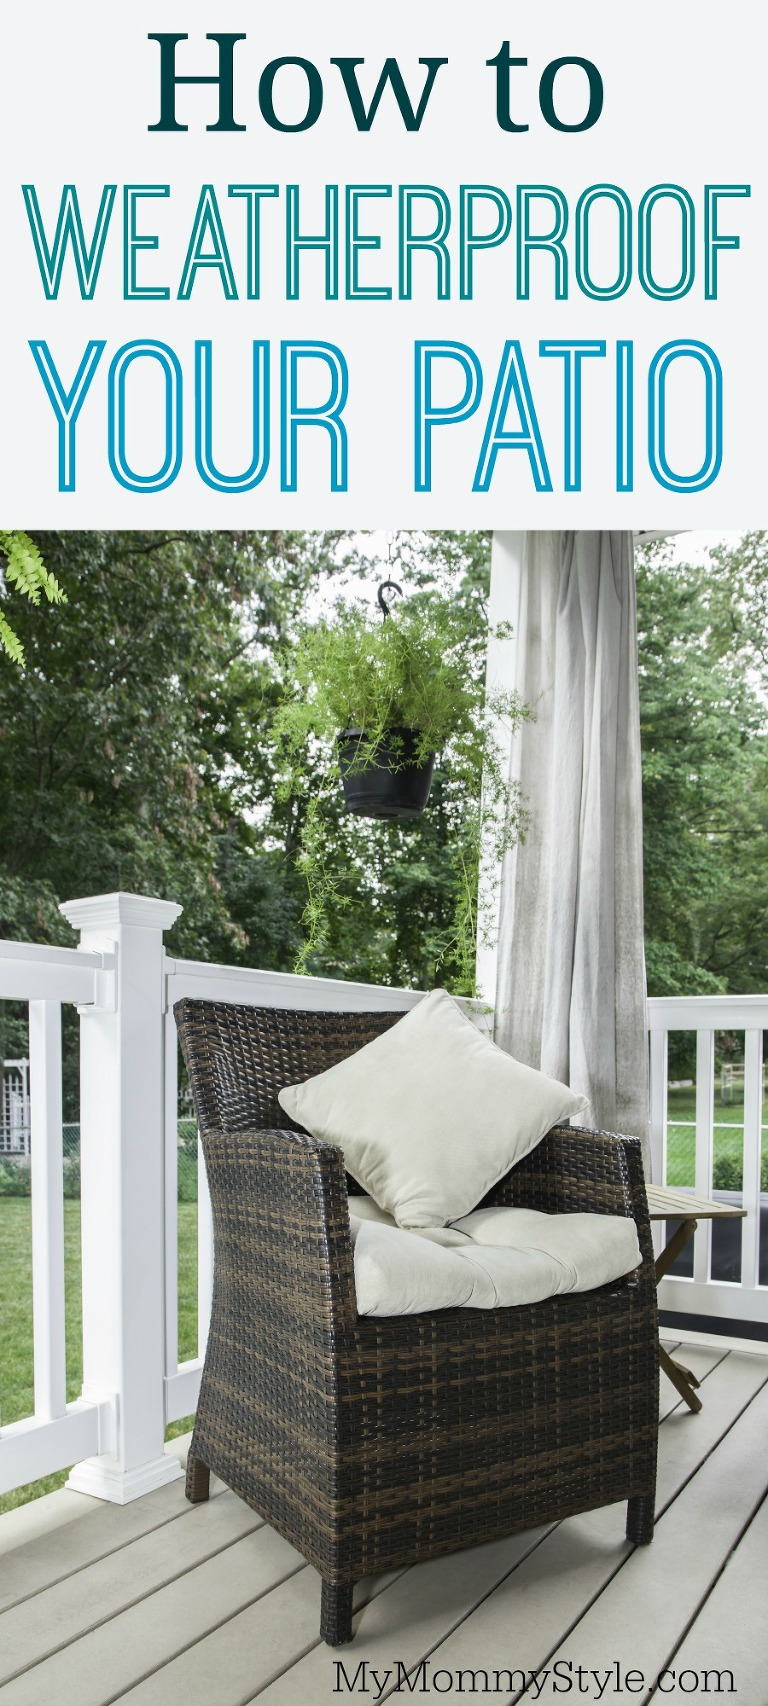 How To Weatherproof Your Patio My Mommy Style